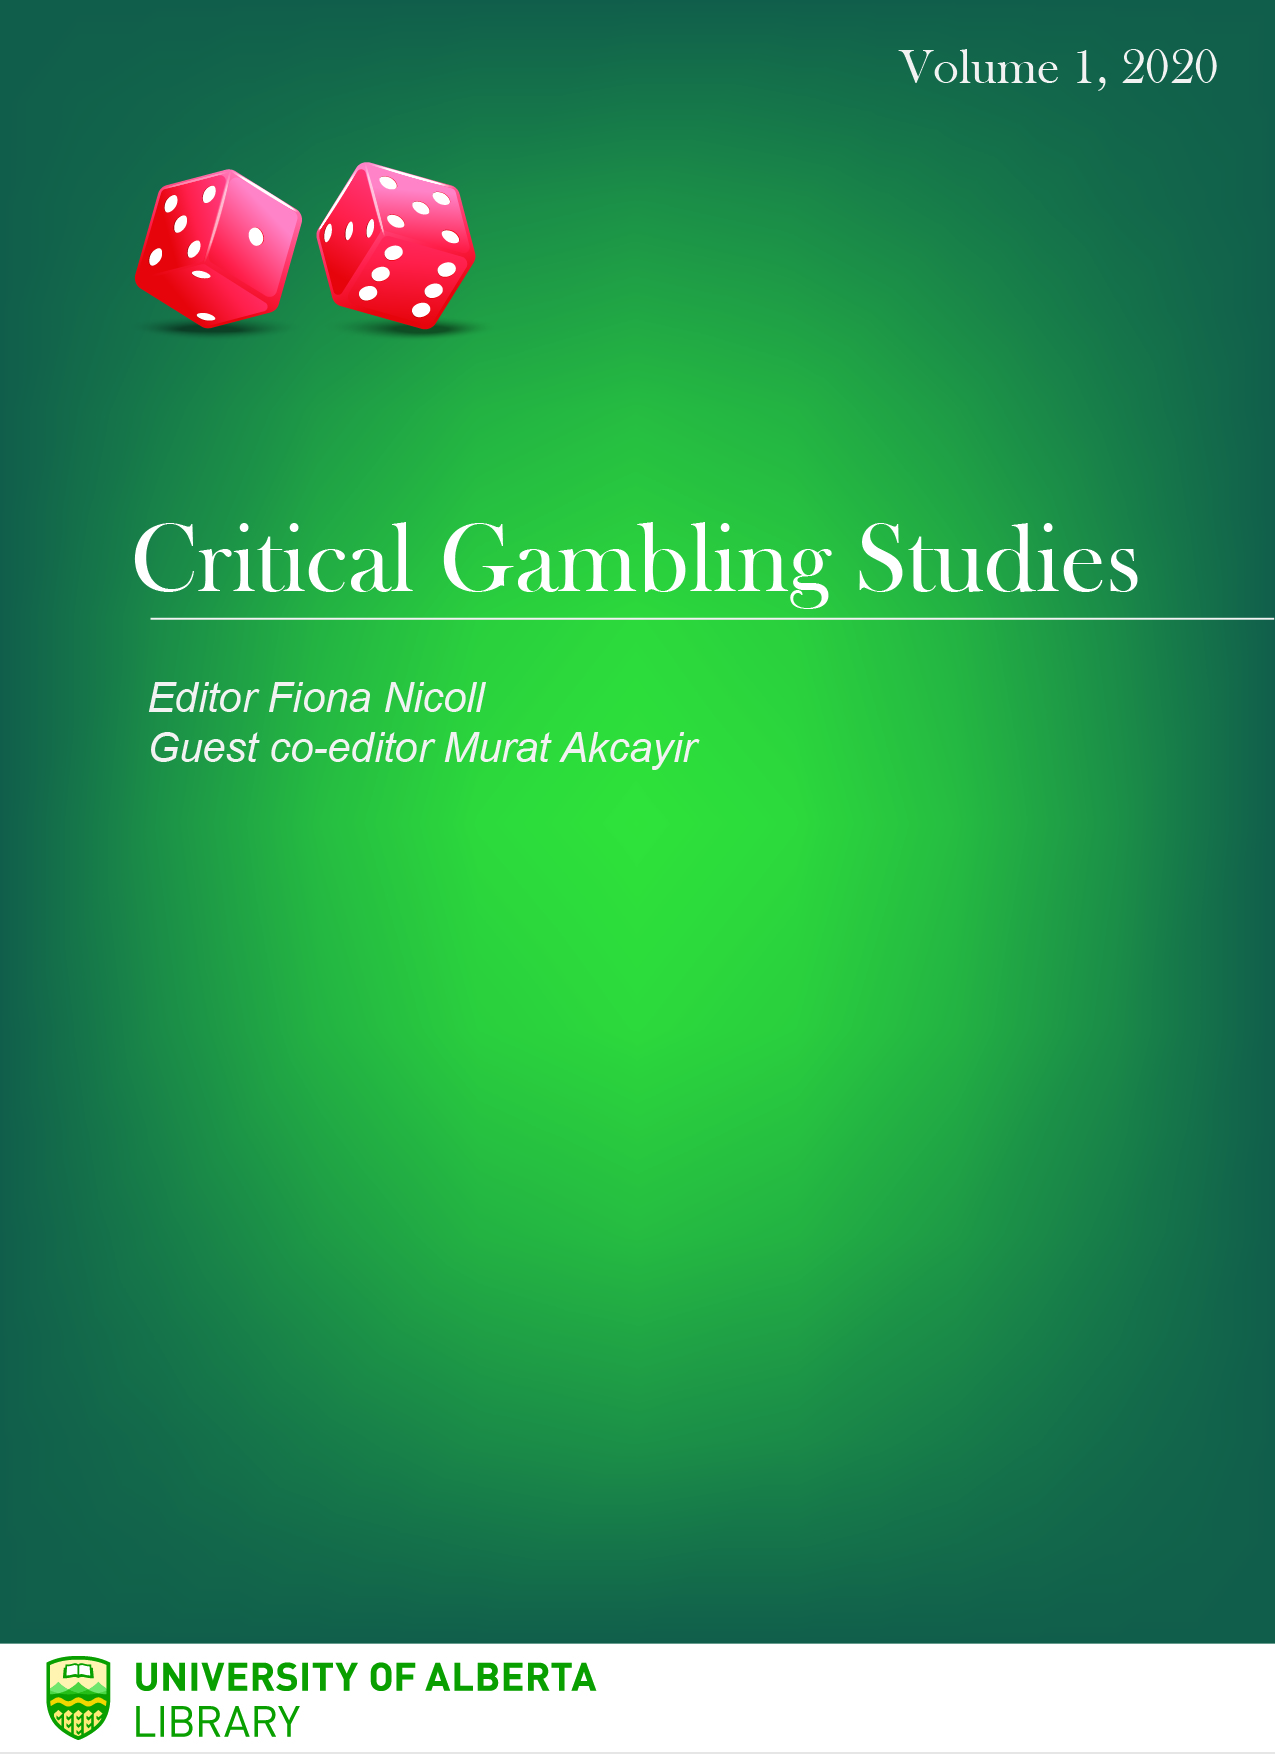 Critical Gambling Studies Volume 1